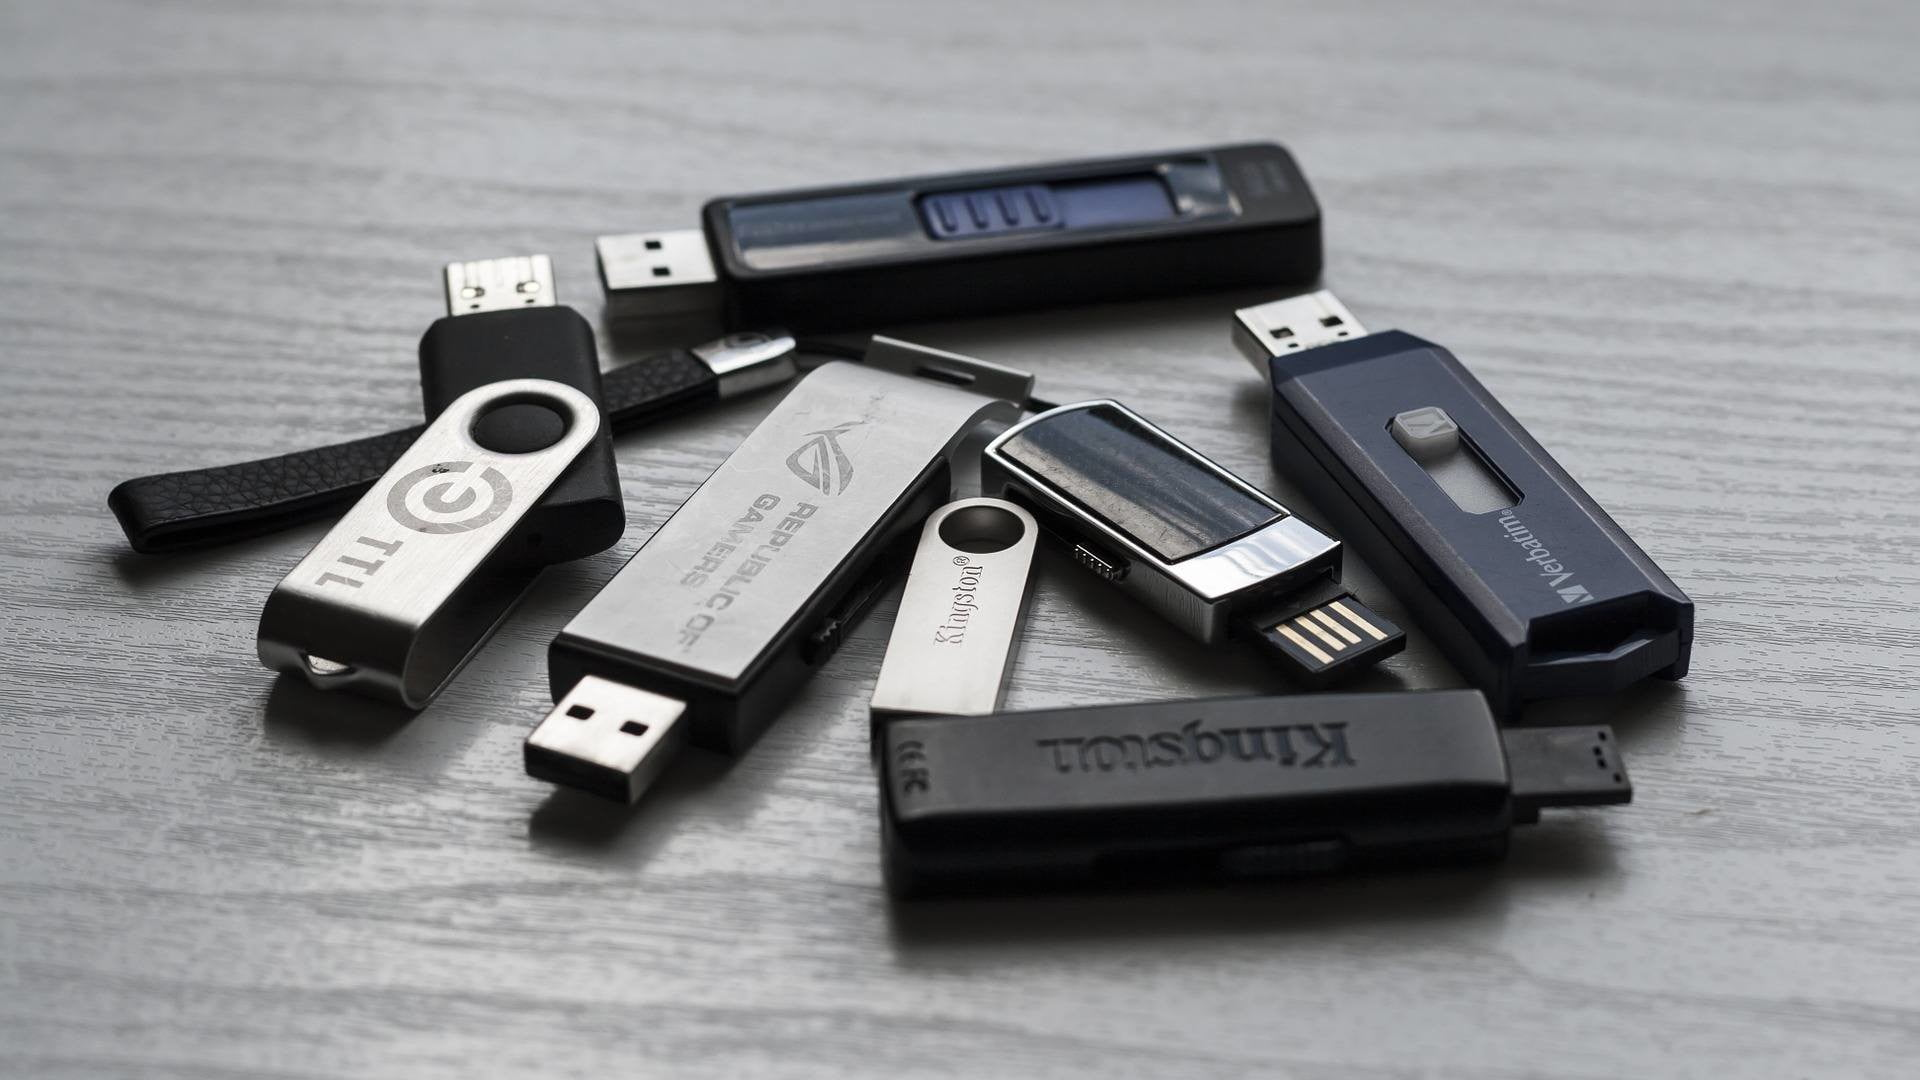 How Effective Is IBM's USB Drive Ban, Really? | Digital Trends